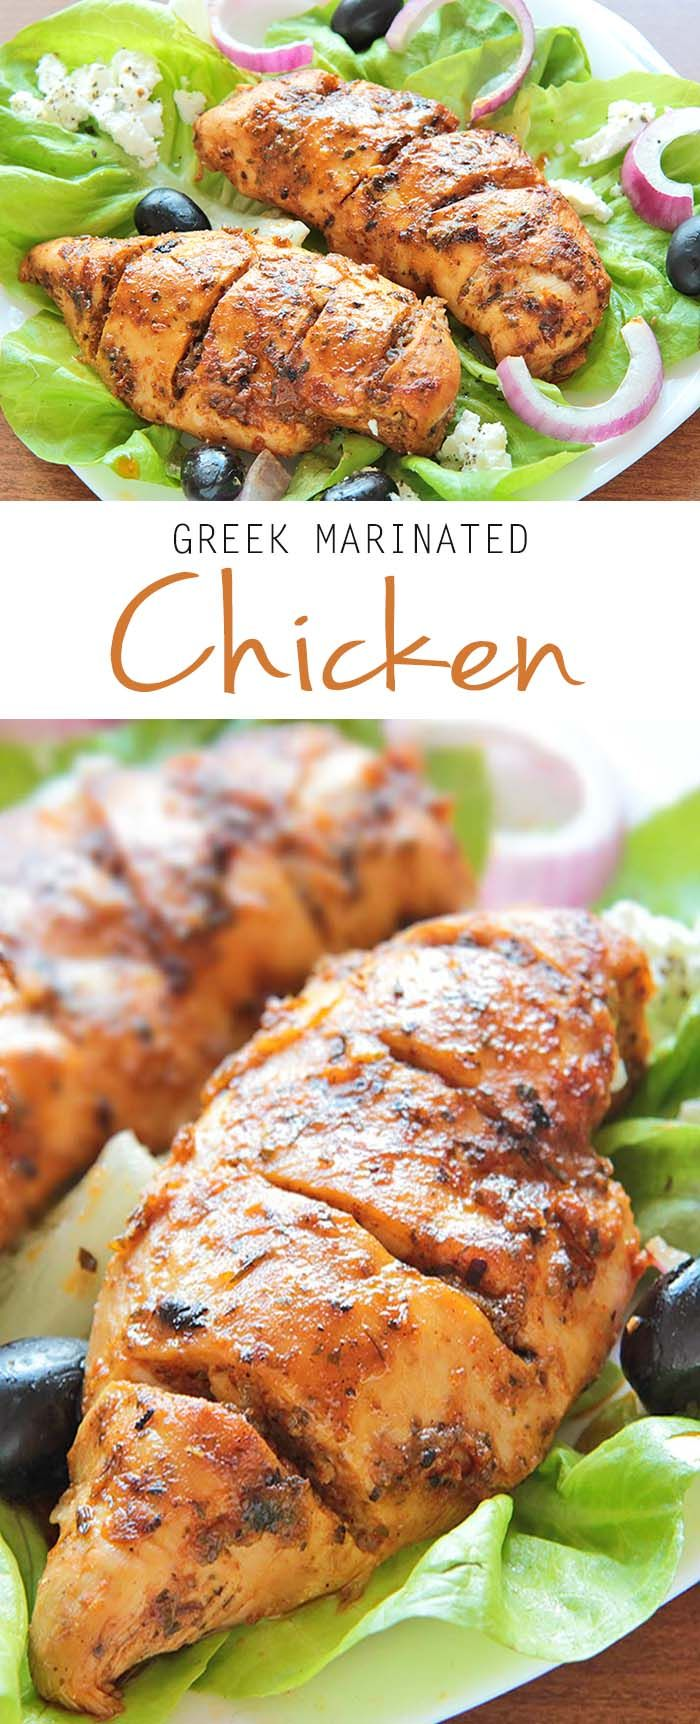 Easy Greek Marinated Chicken | www.sugarapron.com |Fresh #chickenbreast, #marinated with #greek blended spices and baked to perfection.